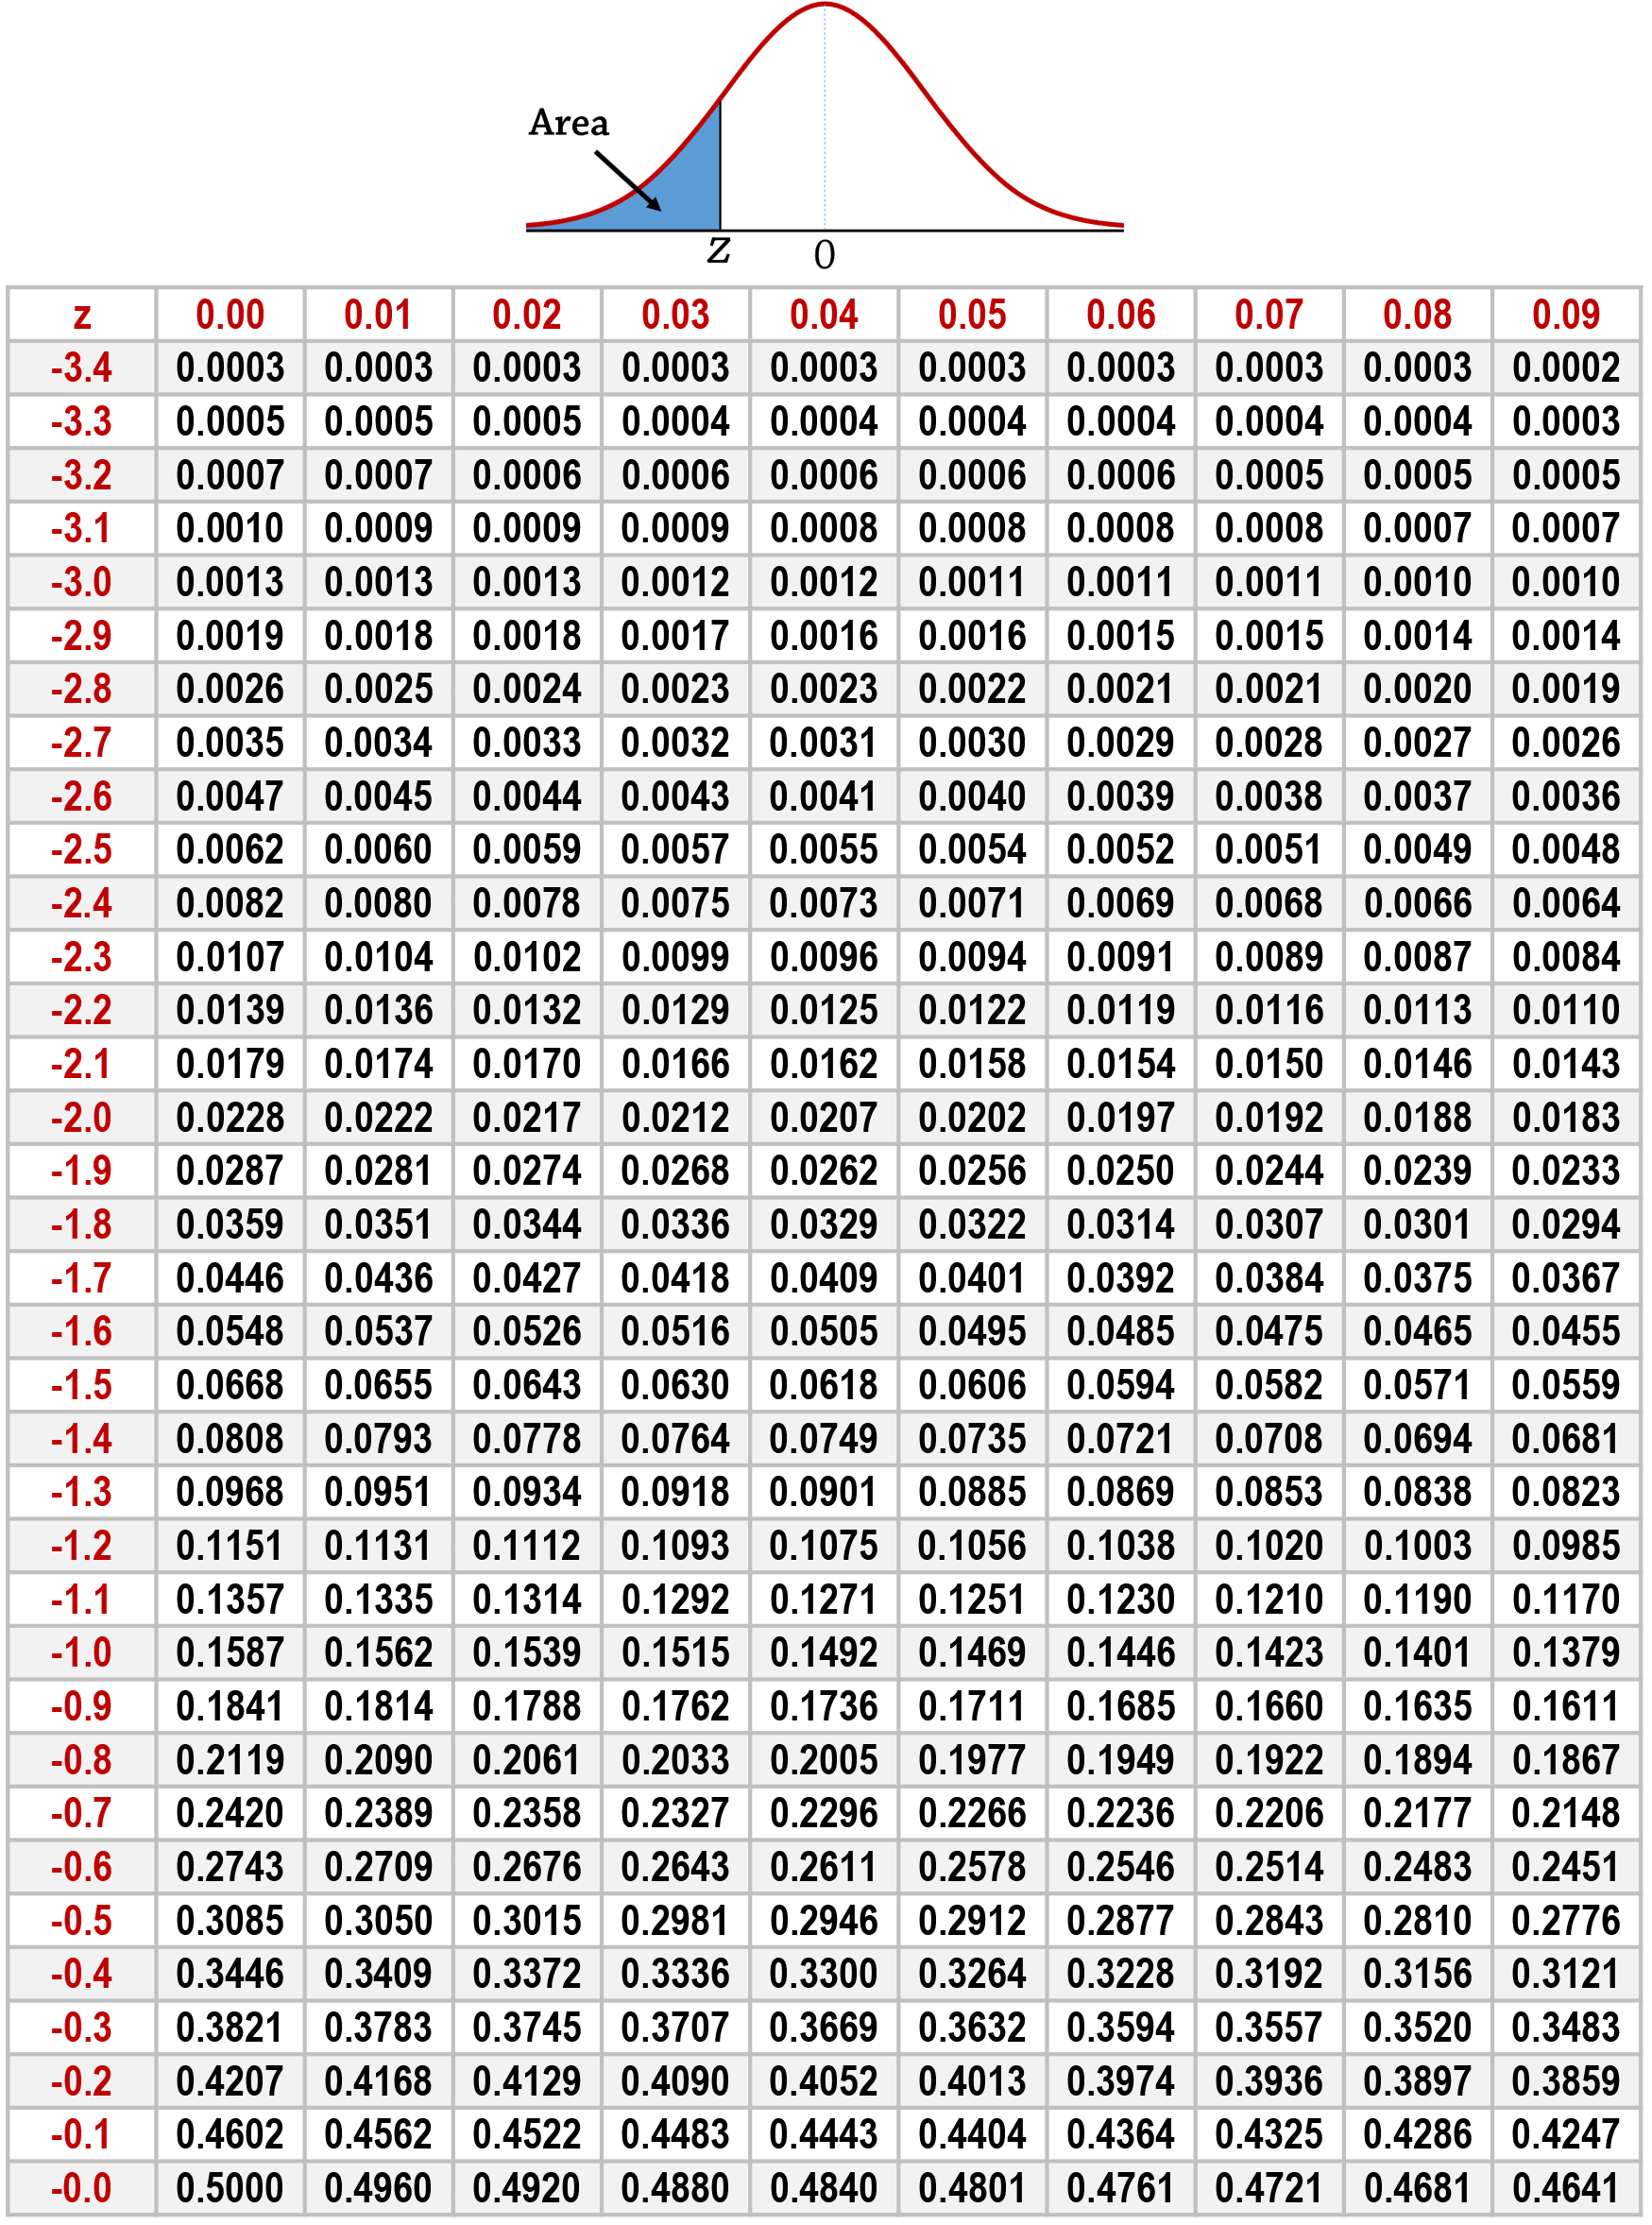 baldness and probability distribution table Here's the probability of finding that the score less than or equal to -042 standard deviation from the mean read the probability from the table as if the z is a positive score, thus 01 go to the row heading of 01 and column heading of 000.